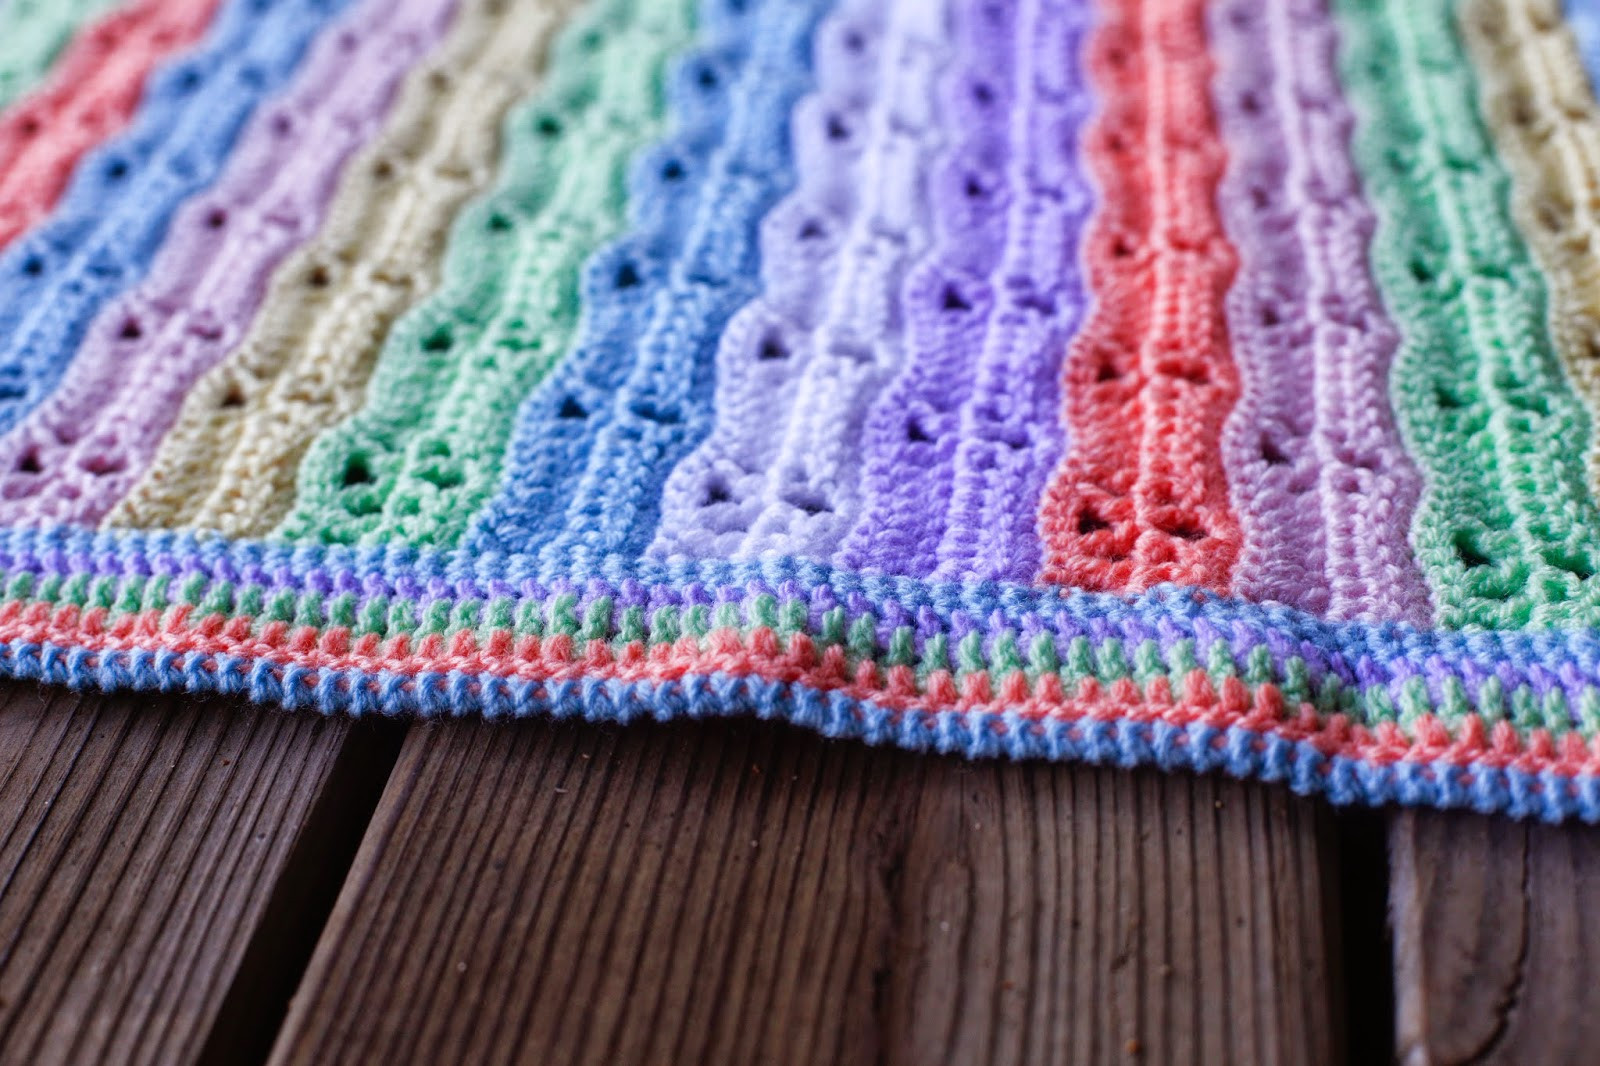 Best Of New Crochet Patterns Wmperm for New Crochet Stitches Of Adorable 47 Photos New Crochet Stitches